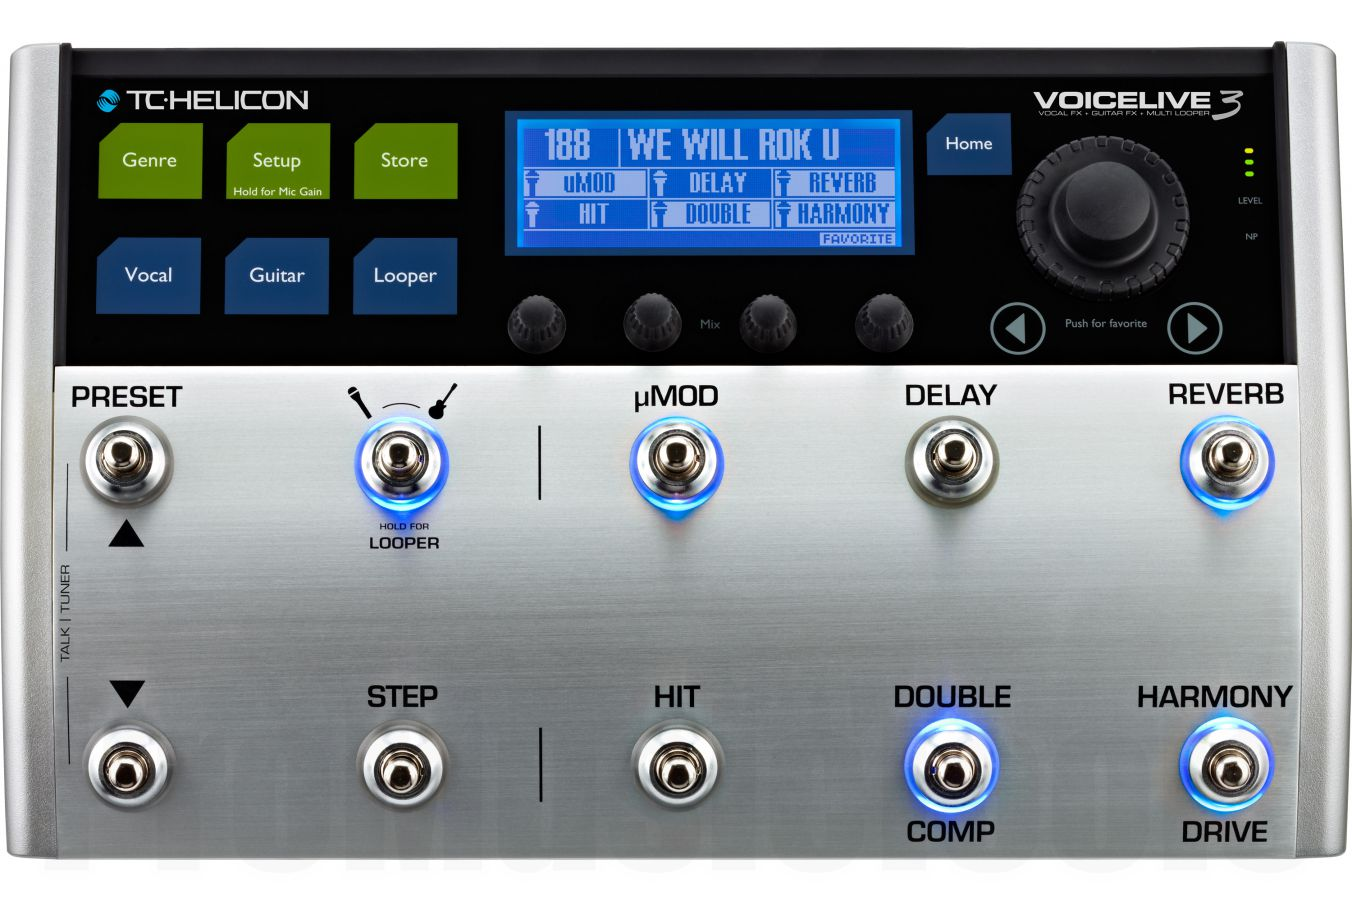 TC Helicon VoiceLive 3 - b-stock (1x opened box)